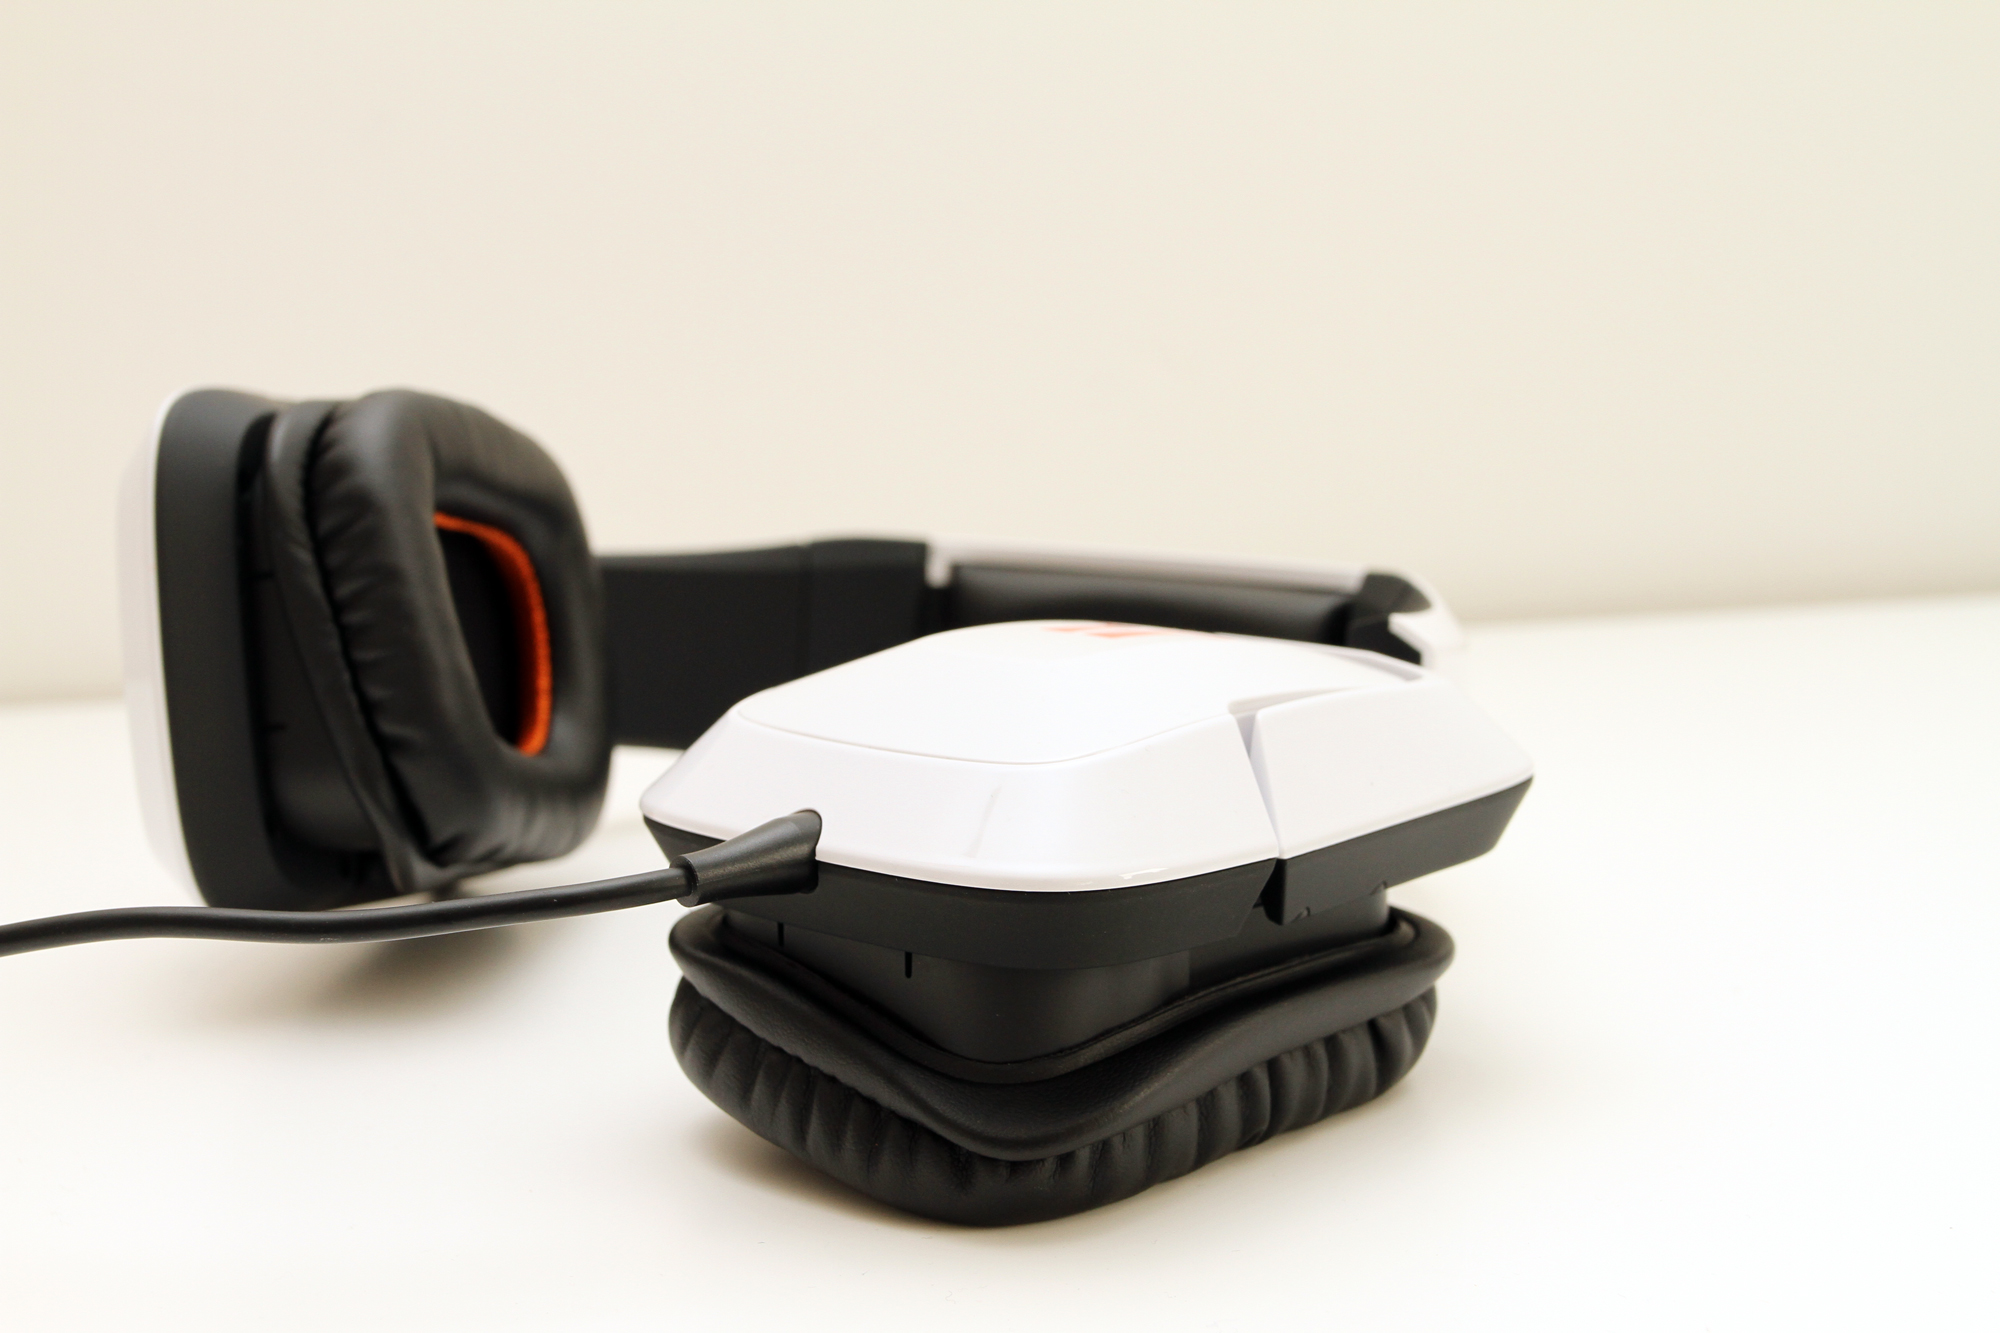 http://www.ereviews.dk/wp-content/uploads/tritton-720plus_04.jpg